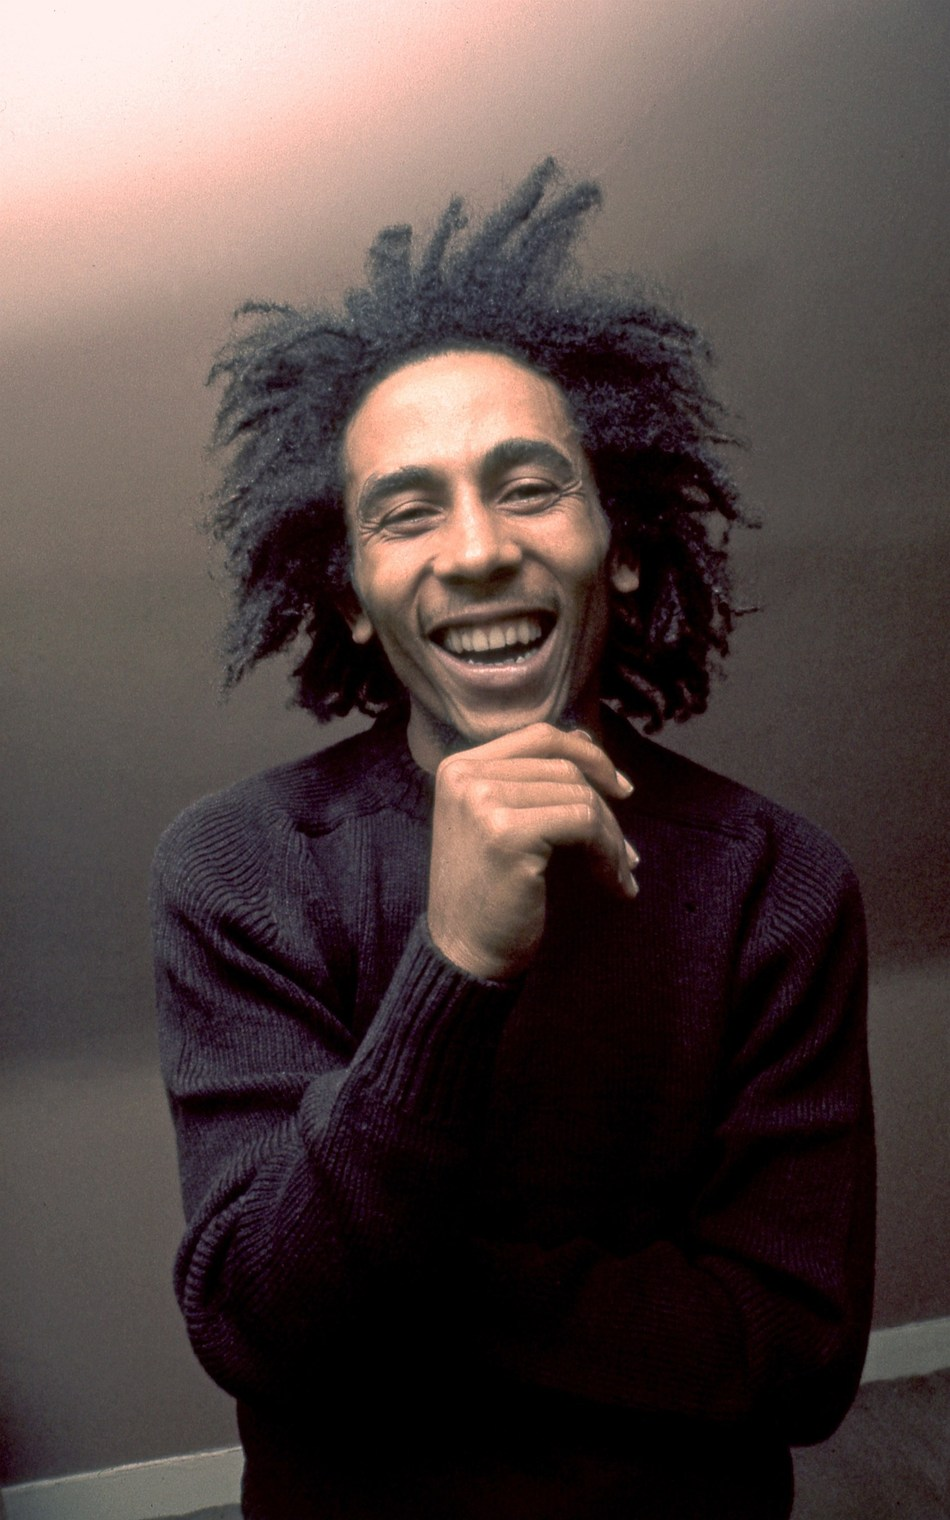 **PRESS RELEASE**MARLEY75 Celebrations Continue With Bob Marley: Legacy Documentary Series – Episode One '75 Years A Legend' Premieres Today On YouTube